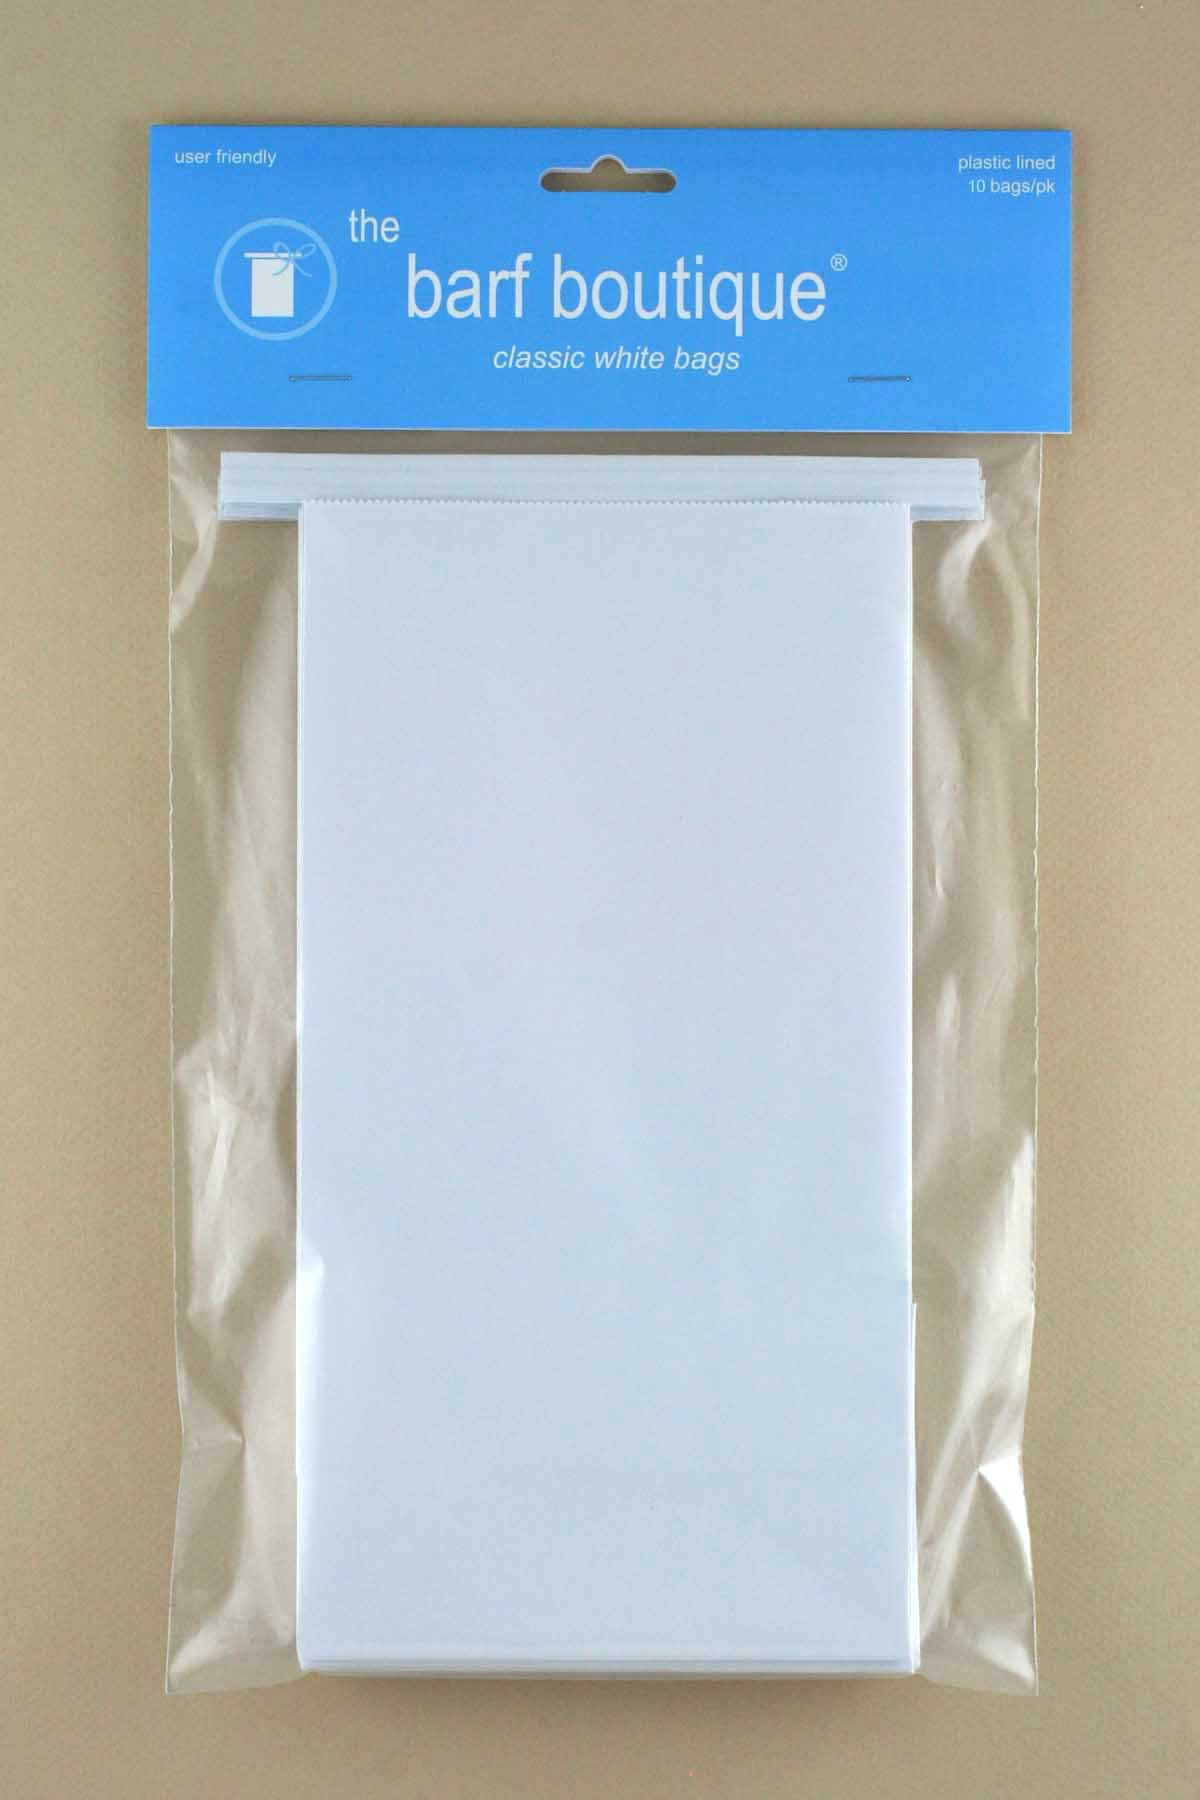 Classic White Vomit/Barf Bags - Travel Motion & Morning Sickness Bags (10/Pk)